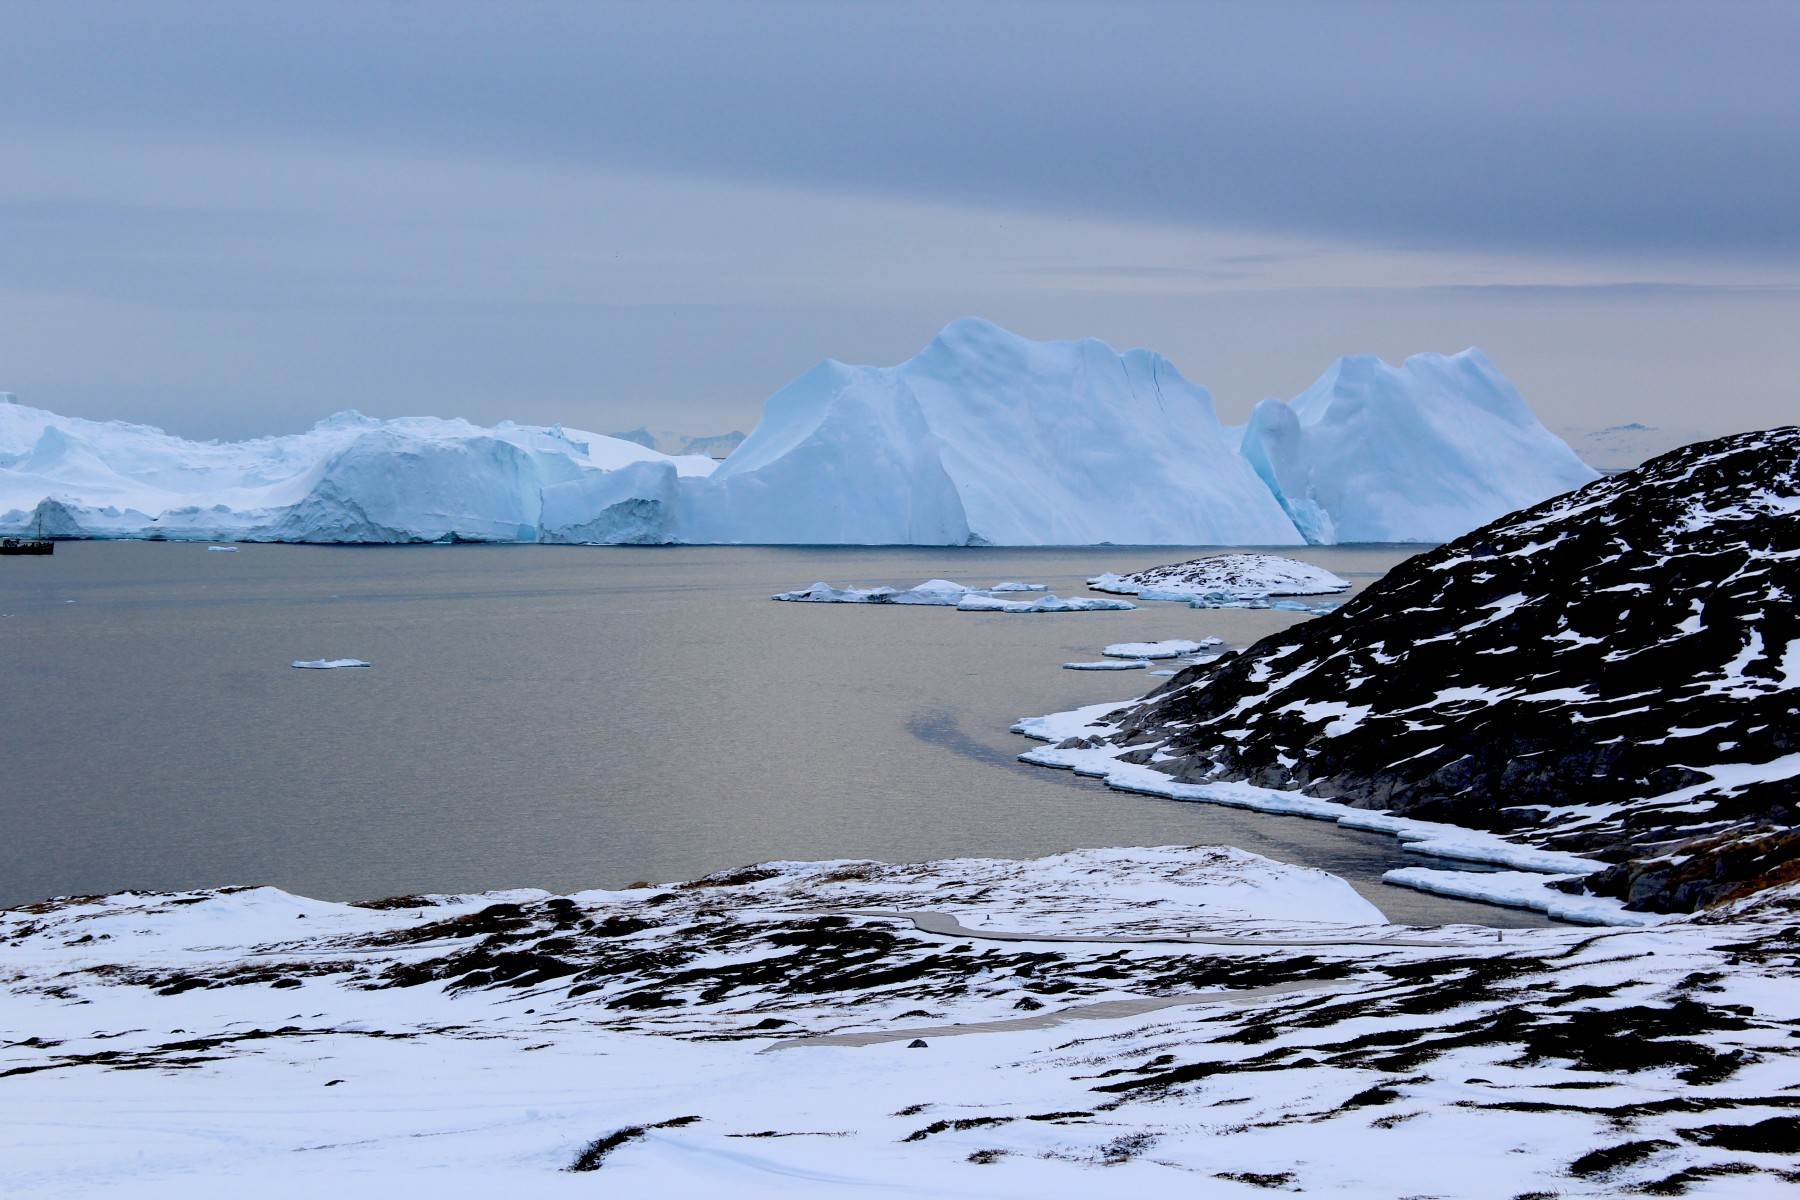 Icebergs near Greenland form from ice that has broken off--or calved--from glaciers on the island. A new study shows that the glaciers are losing ice rapidly enough that, even if global warming were to stop, Greenland's glaciers would continue to shrink.